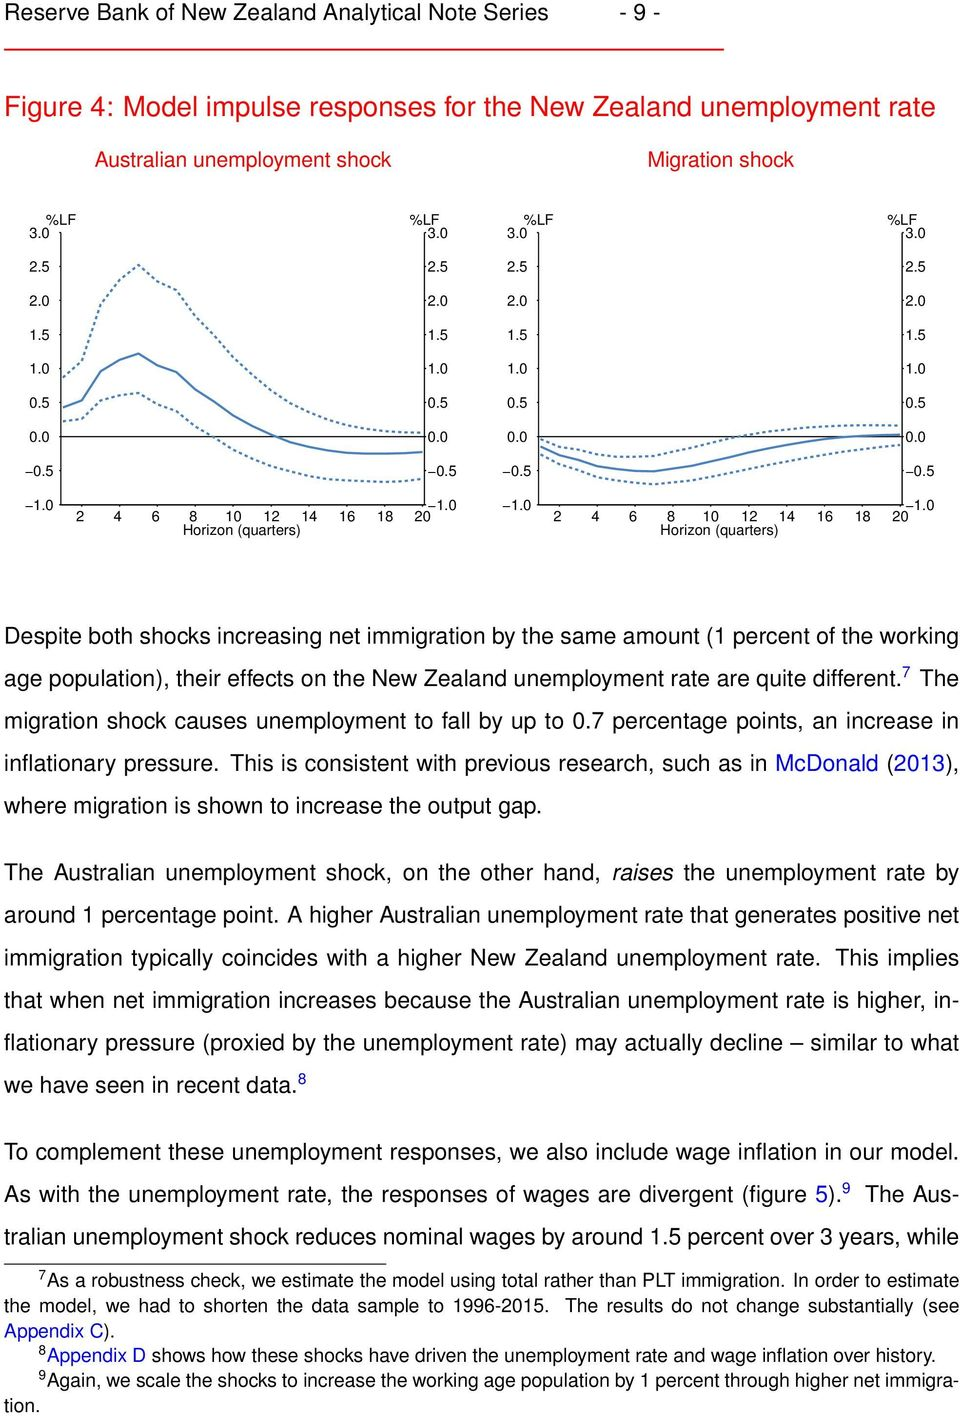 New Zealand unemployment rate are quite different. 7 The migration shock causes unemployment to fall by up to.7 percentage points, an increase in inflationary pressure.